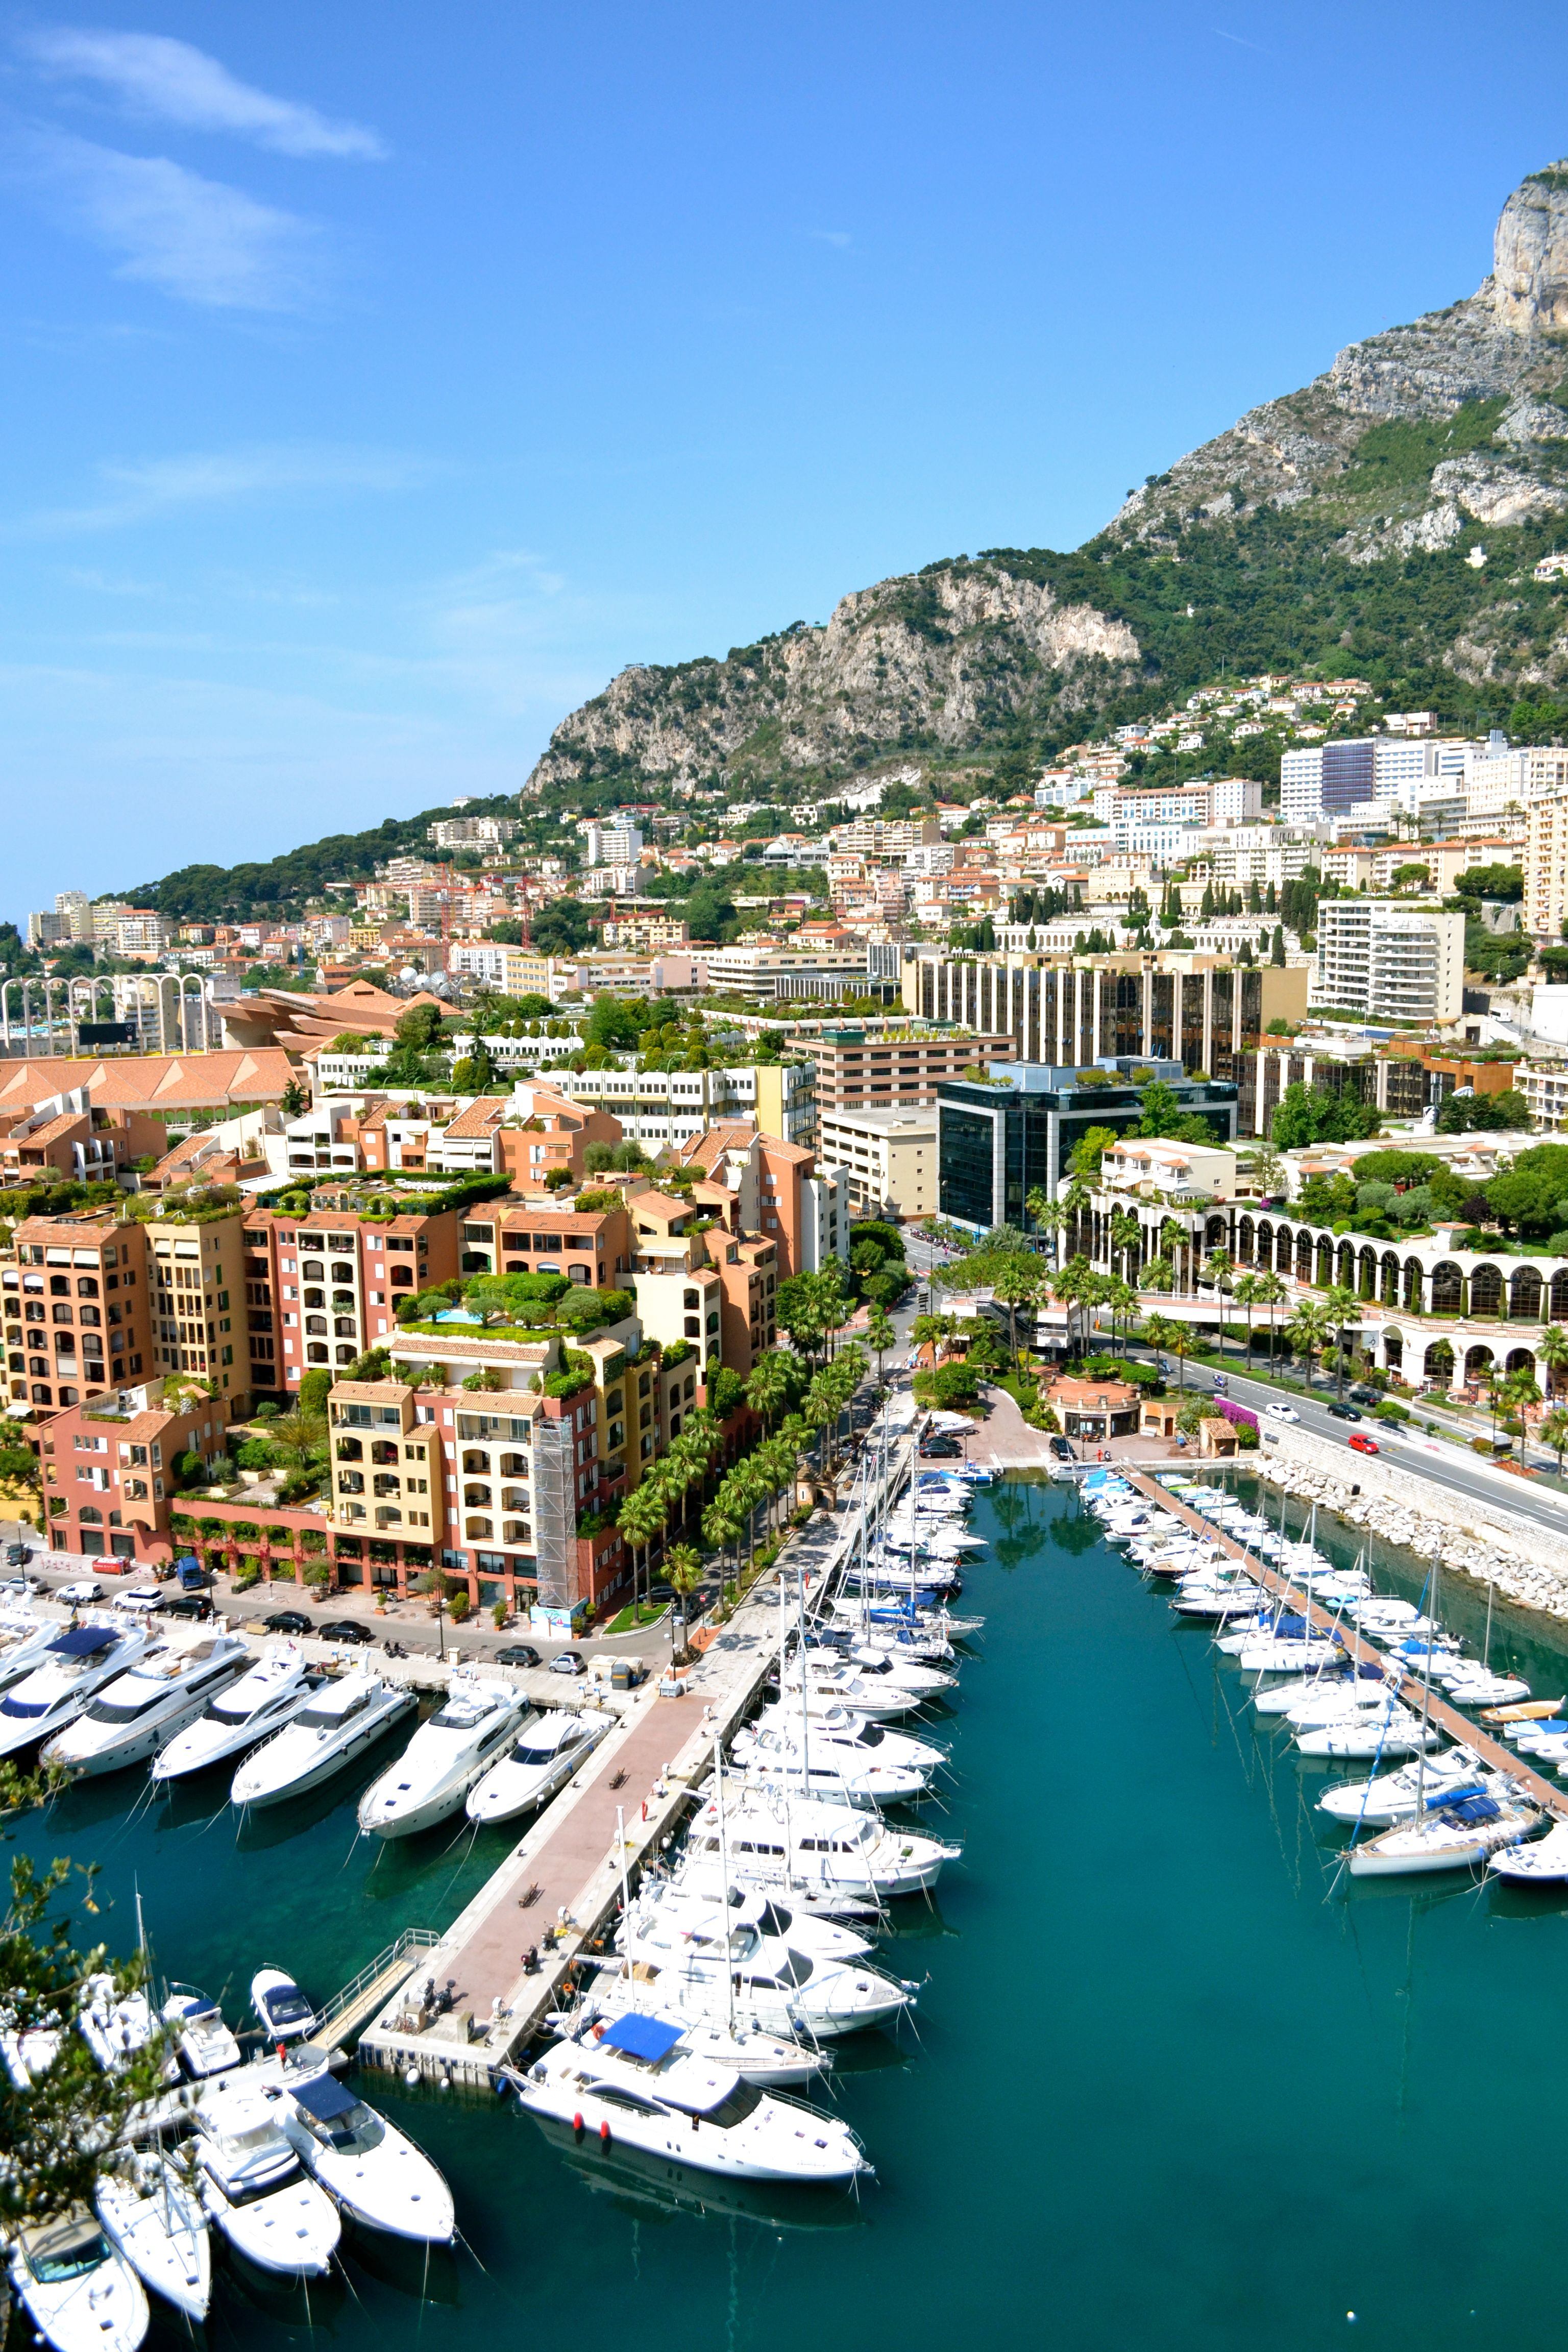 Monaco, a sovereign city - state in the French Riviera. Western Europe bordered on 3 sides by France with one side bordered by the Mediterranean Sea.